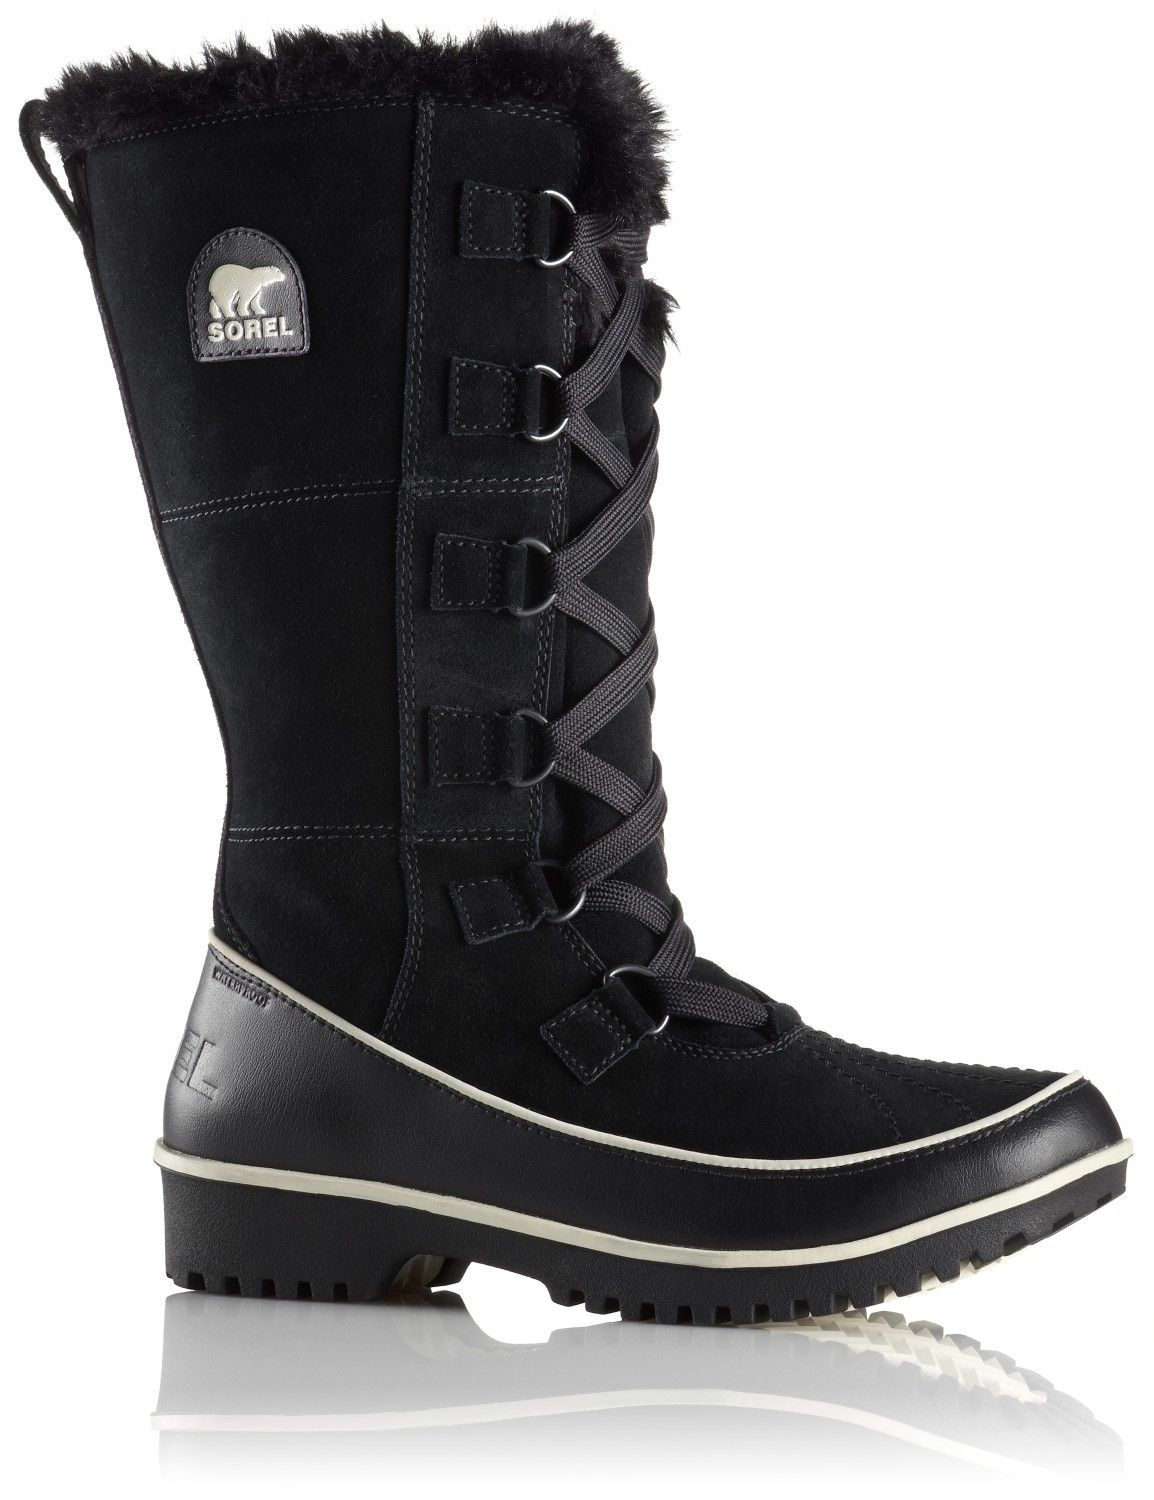 Sorel W Tivoli High II, Black | Größe US 6 / UK 4 / EU 37,US 5.5 / UK 3.5 / EU